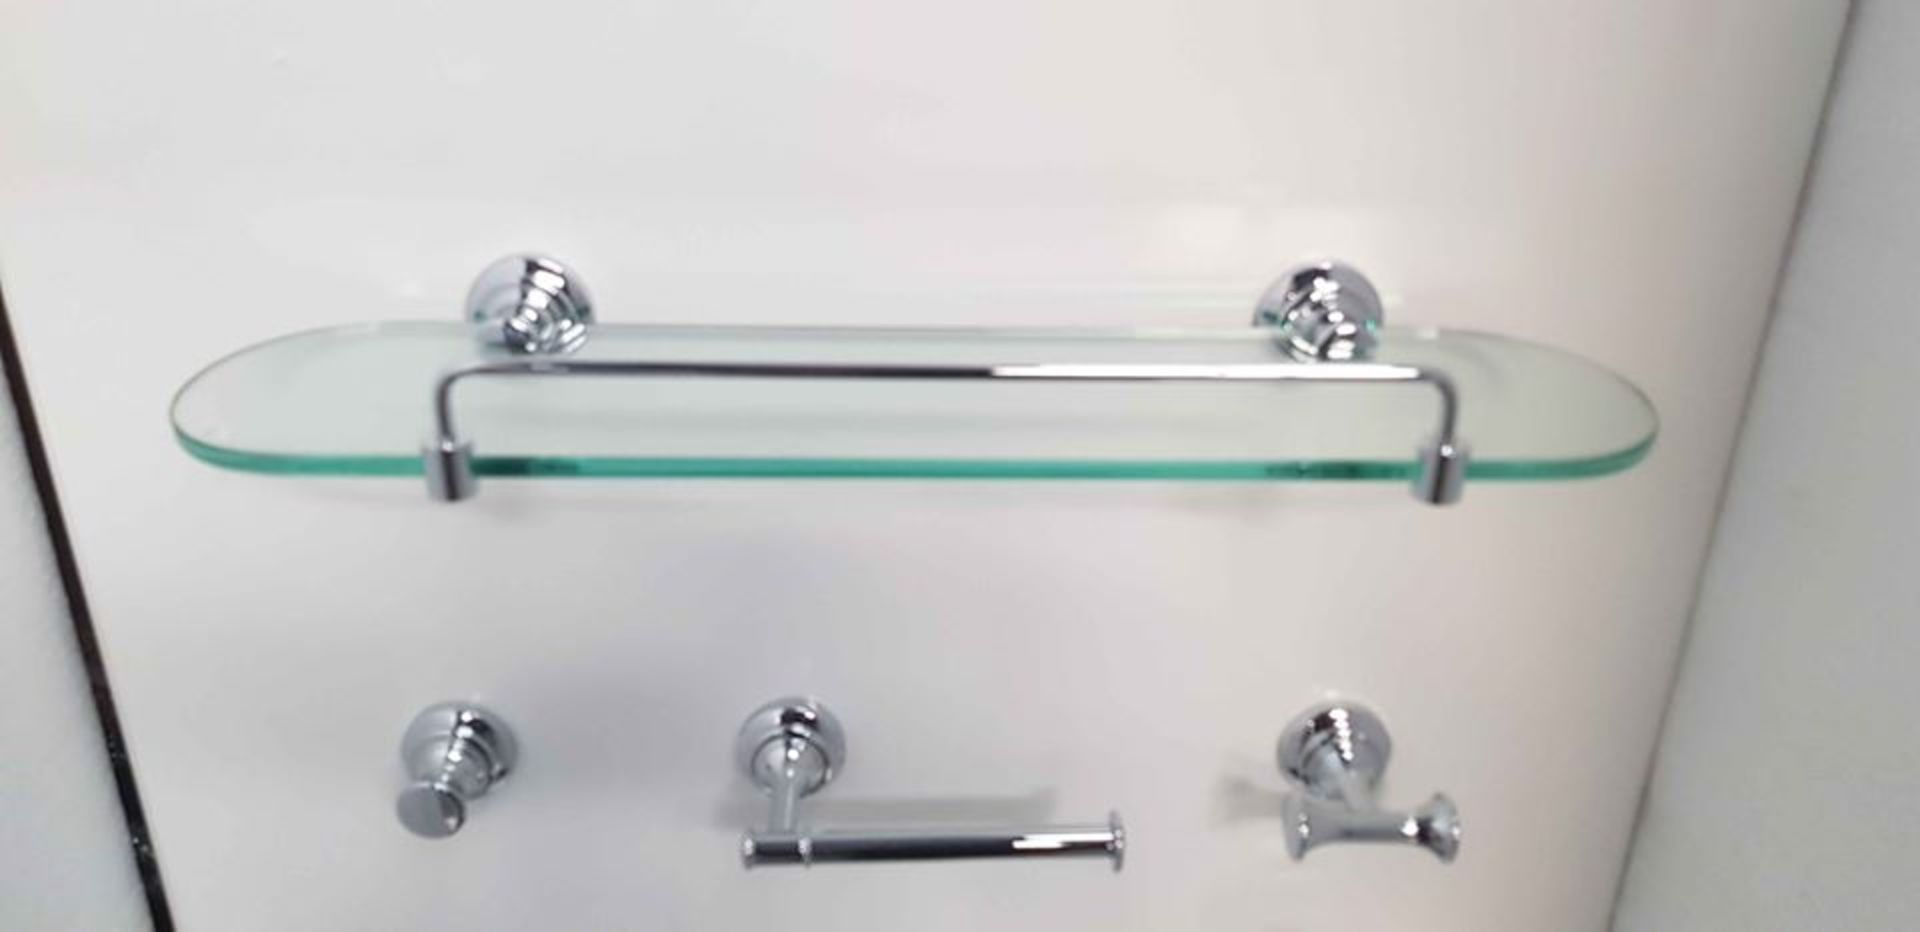 Lot 14 - Transition 12 Piece, very high quality, bathroom accessory set in polished chrome & ceramic finish.